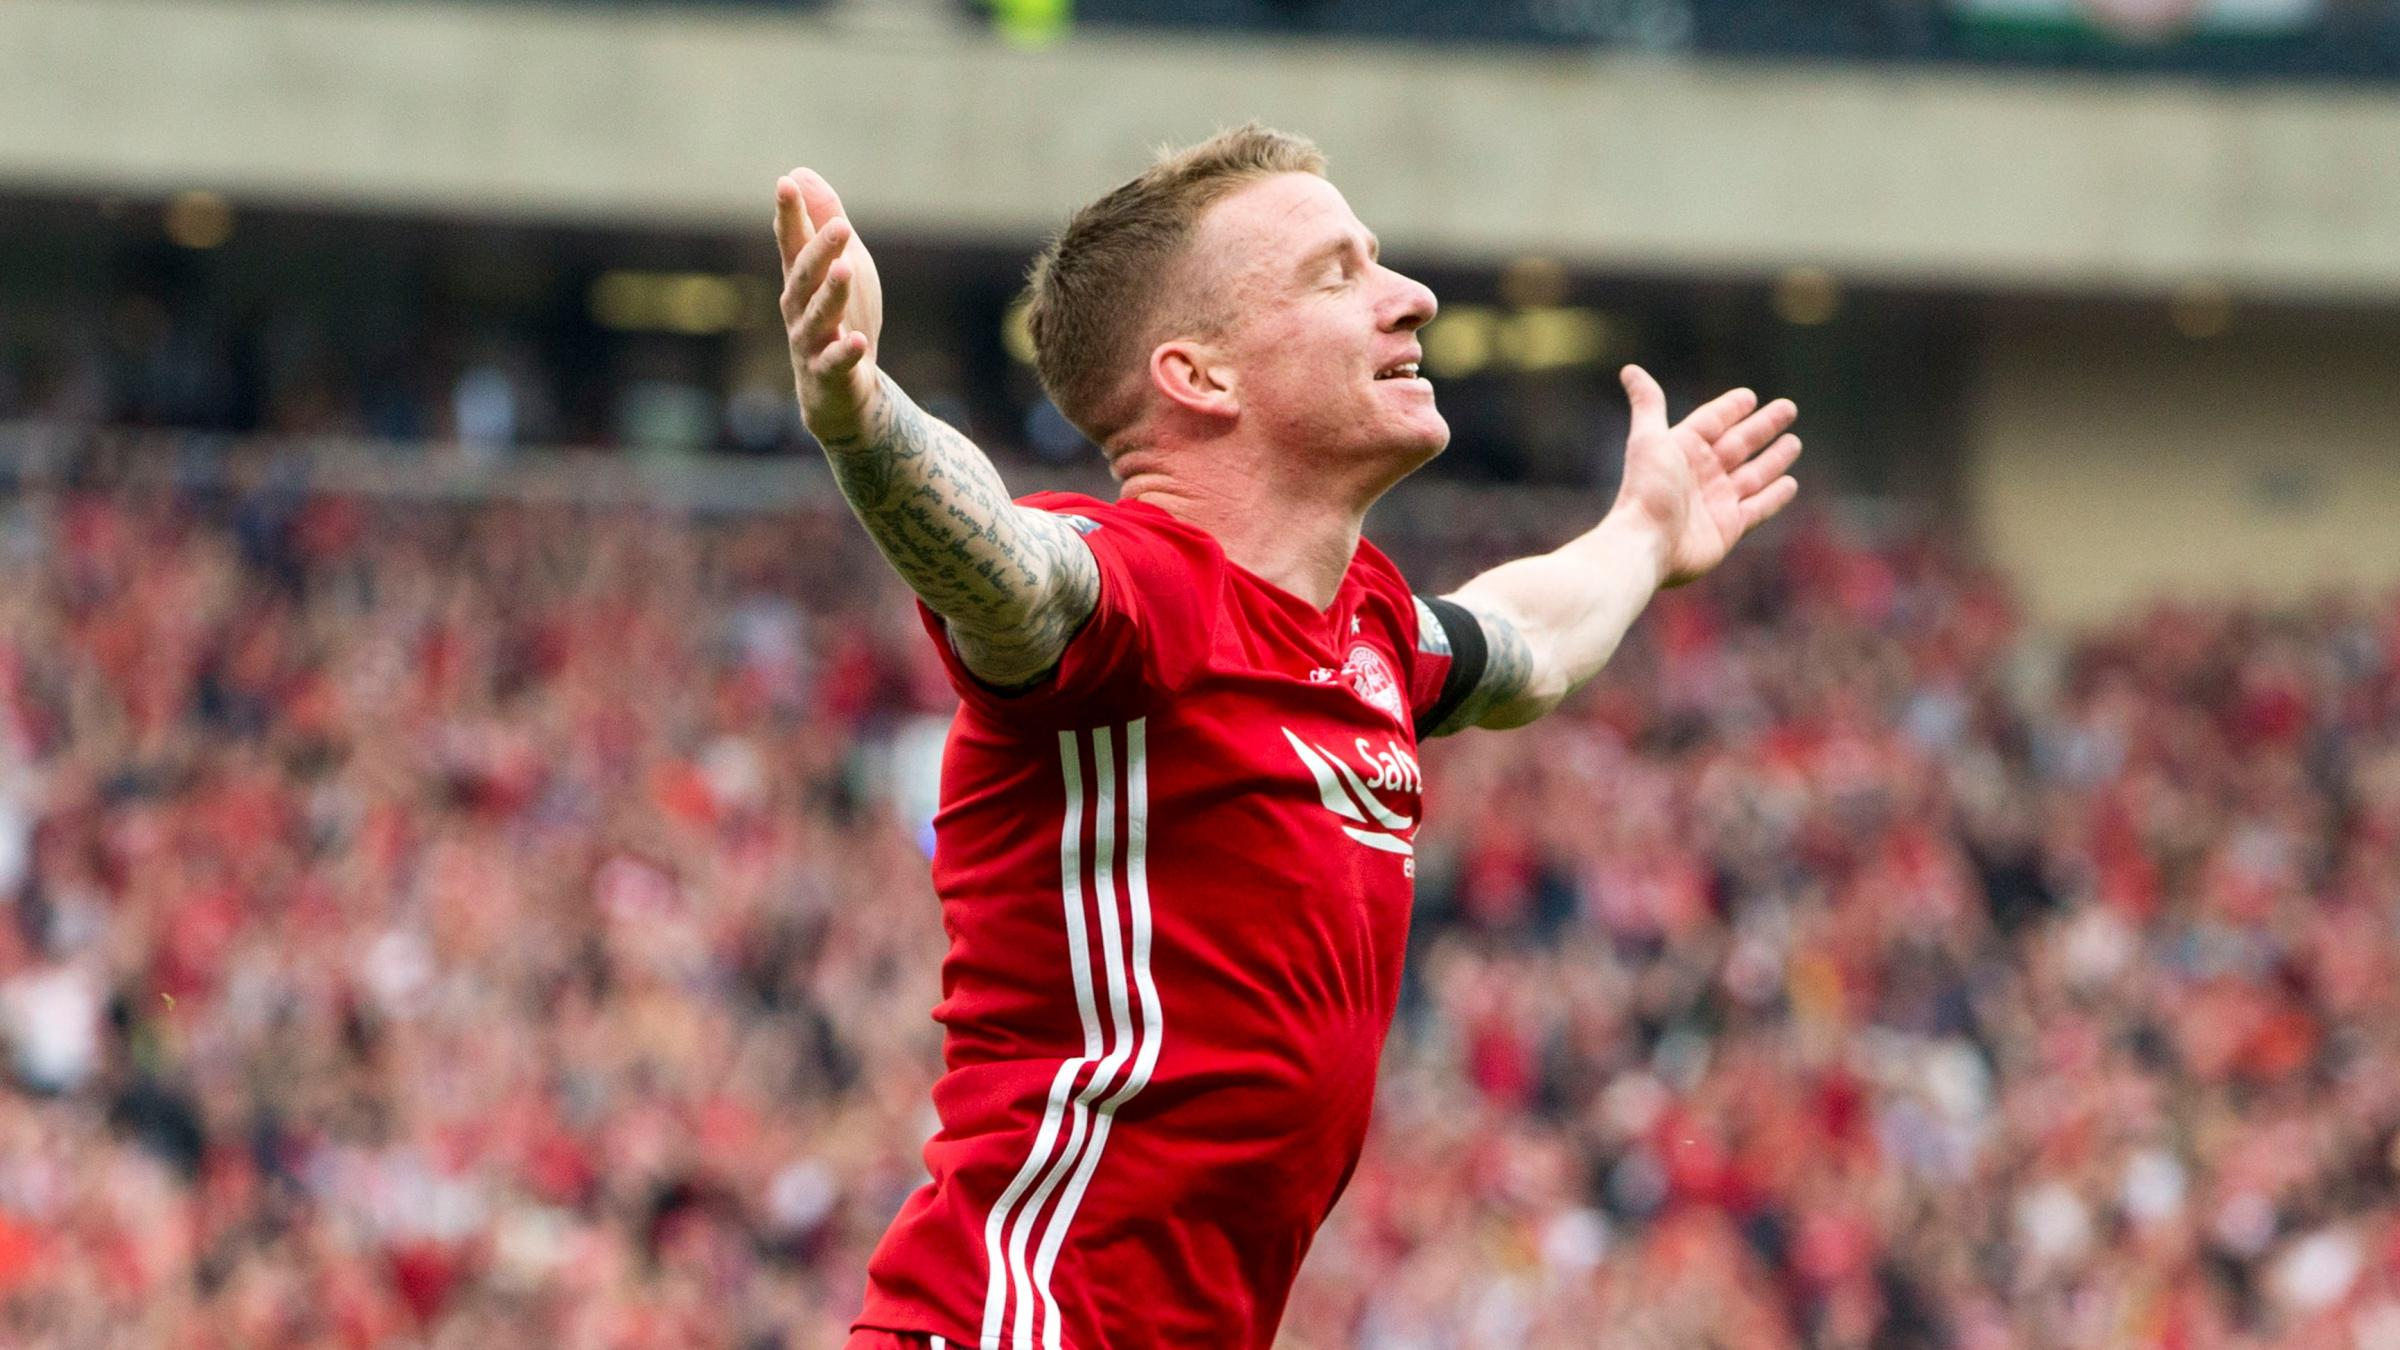 Celtic sign Jonny Hayes from SPFL rivals Aberdeen